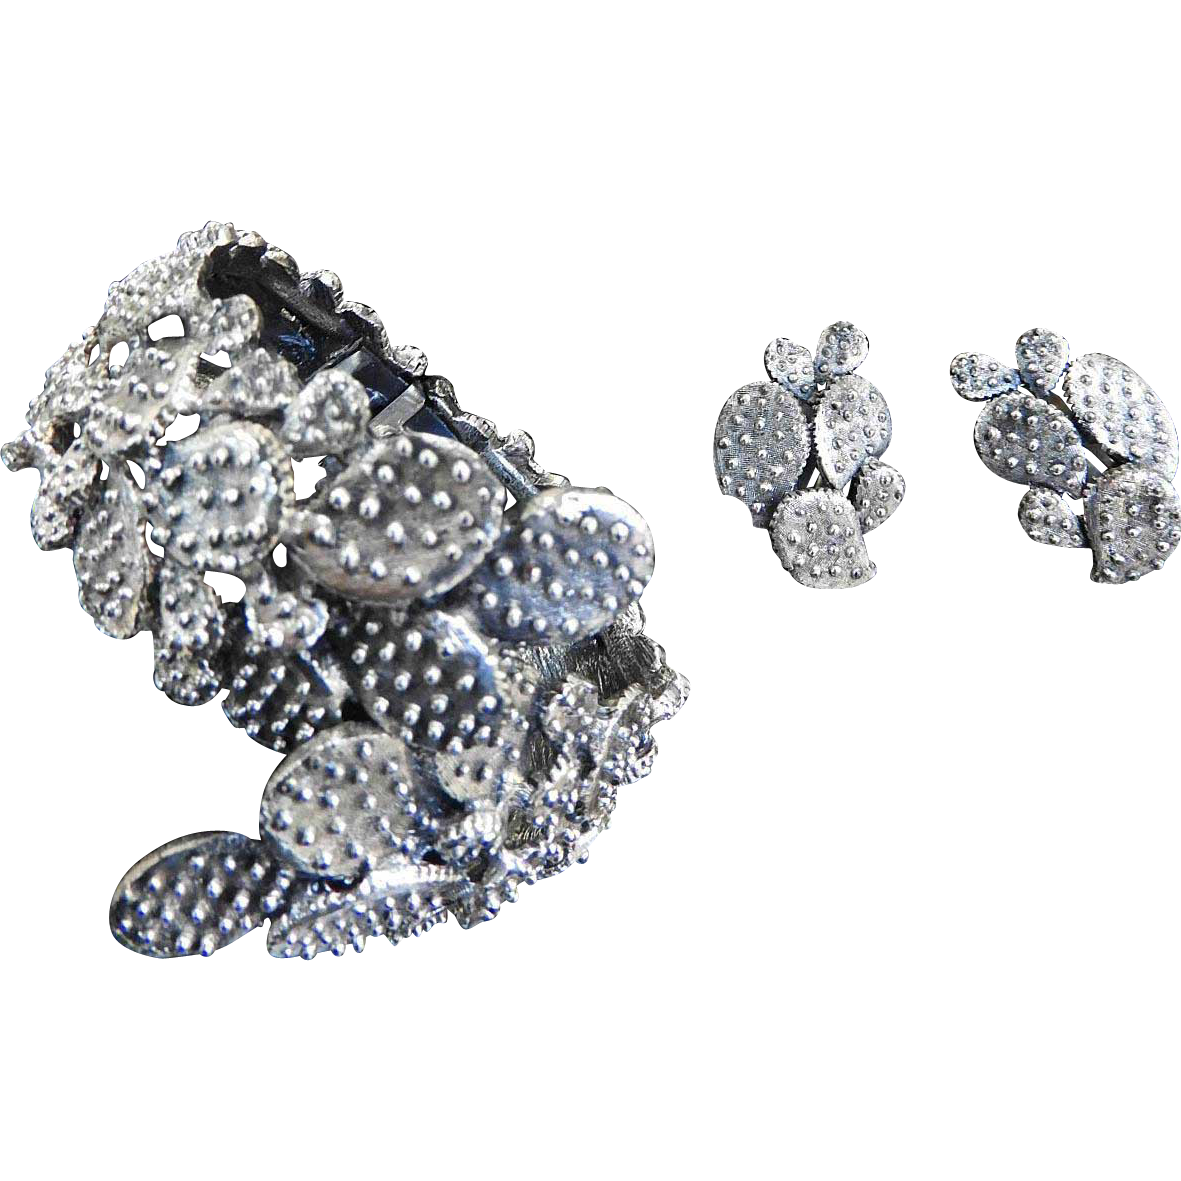 1950s Tortollani Cactus Clamper Bracelet and Earrings